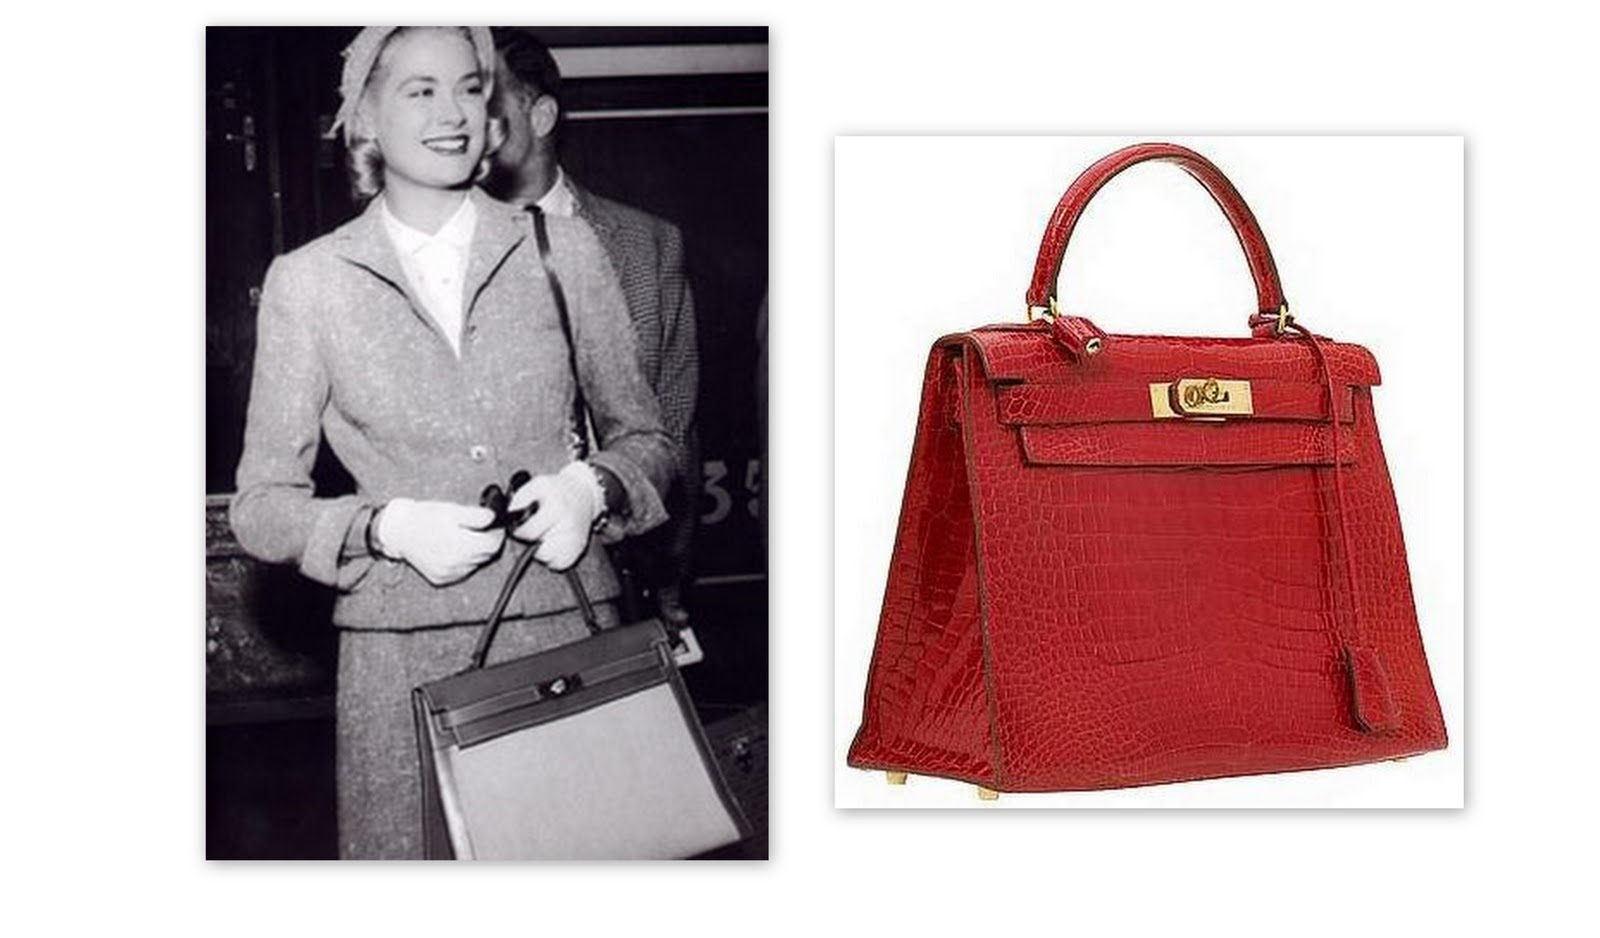 kelly bag hermes and birkin bag - Stileggendo....spunti di vista: KELLY e BIRKIN....IT-BAG